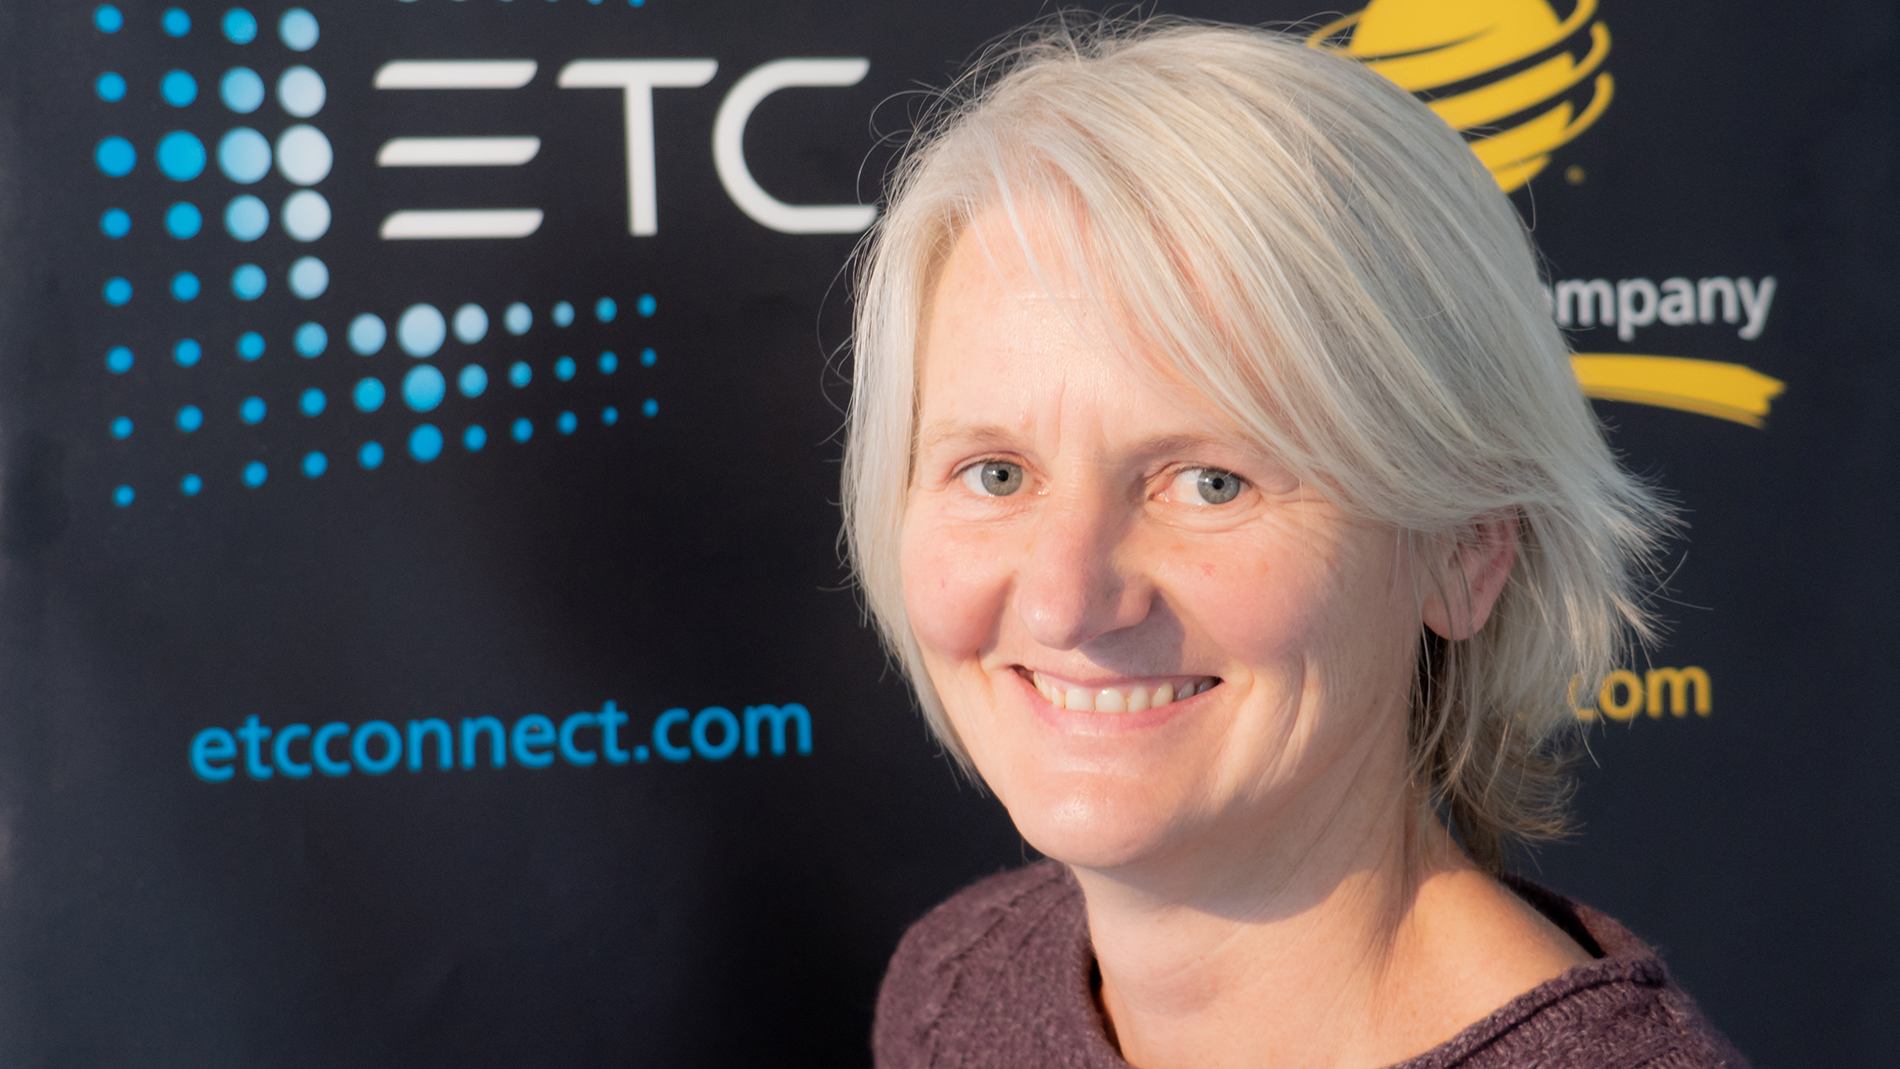 Interview with Rosi Marx, European Marketing Manager at ETC GmbH